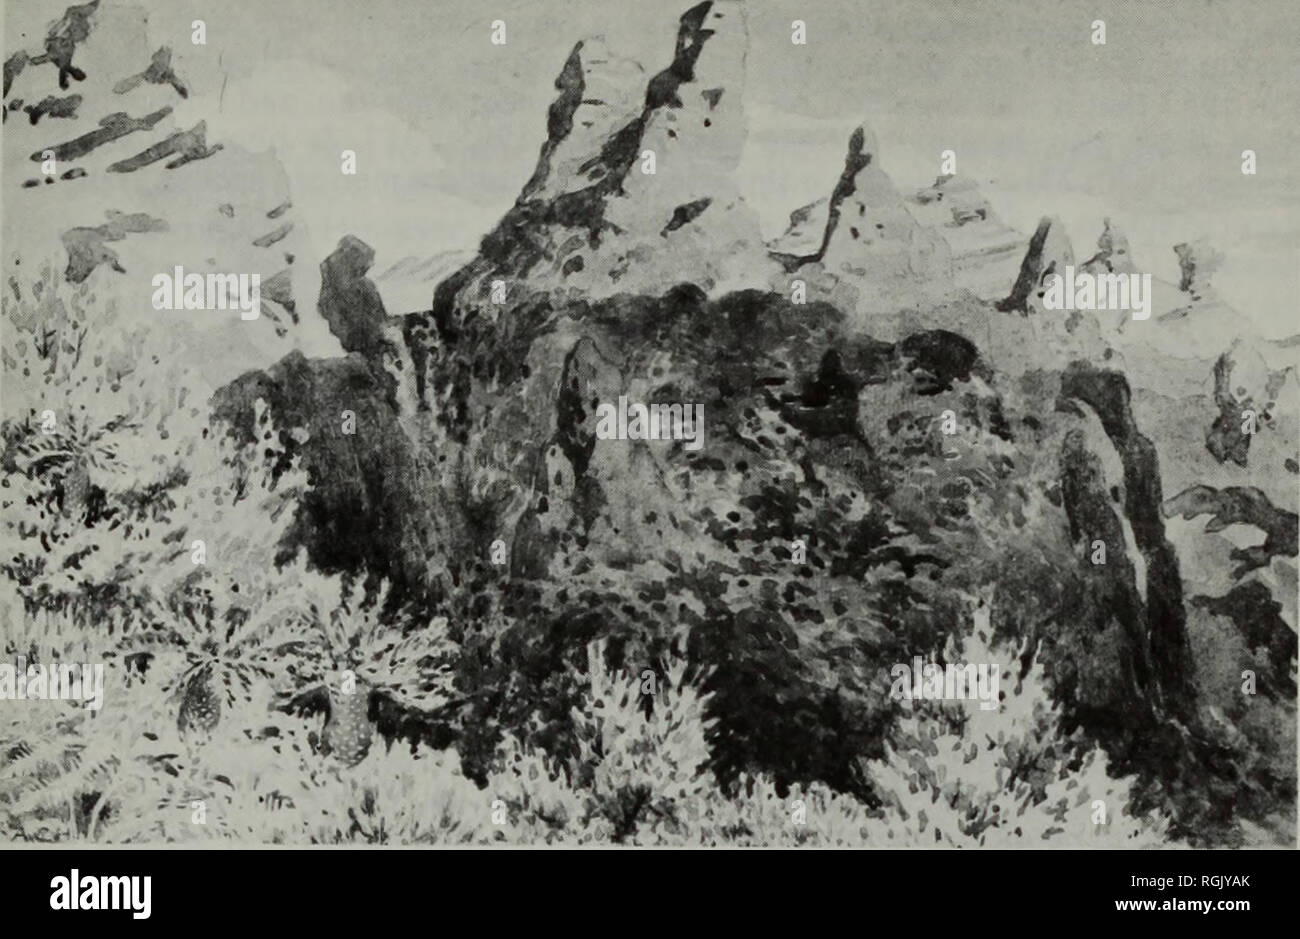 """. Bulletin of the British Museum (Natural History) Botany. VASCULAR PLANTS FROM TRISTAN DA CUNHA 409. """"^' â if. â . Fig. 33 Gough Island near the ridge peaks, with the ferns Blechnum palmiforme and Histiopteris incisa var. carmichaeliana and the island tree, Phylica arborea, forming the foreground. 8 June 1927. From an original watercolour by Sir Alister Hardy. (BM), 174 (BM); Dver 3555 (PRE, NBG); Fleming 78 (E); Mejland 157 (O); 1014 (O, K), 1437 (O), 1438 (O, BM), 1439 (O, BM), 1440 (O, BM, K), 1441 (O); Thouars s.n. (P -holotype of P. palmaeformis); Wace T.40 (BM). Inaccessible: Chris Stock Photo"""